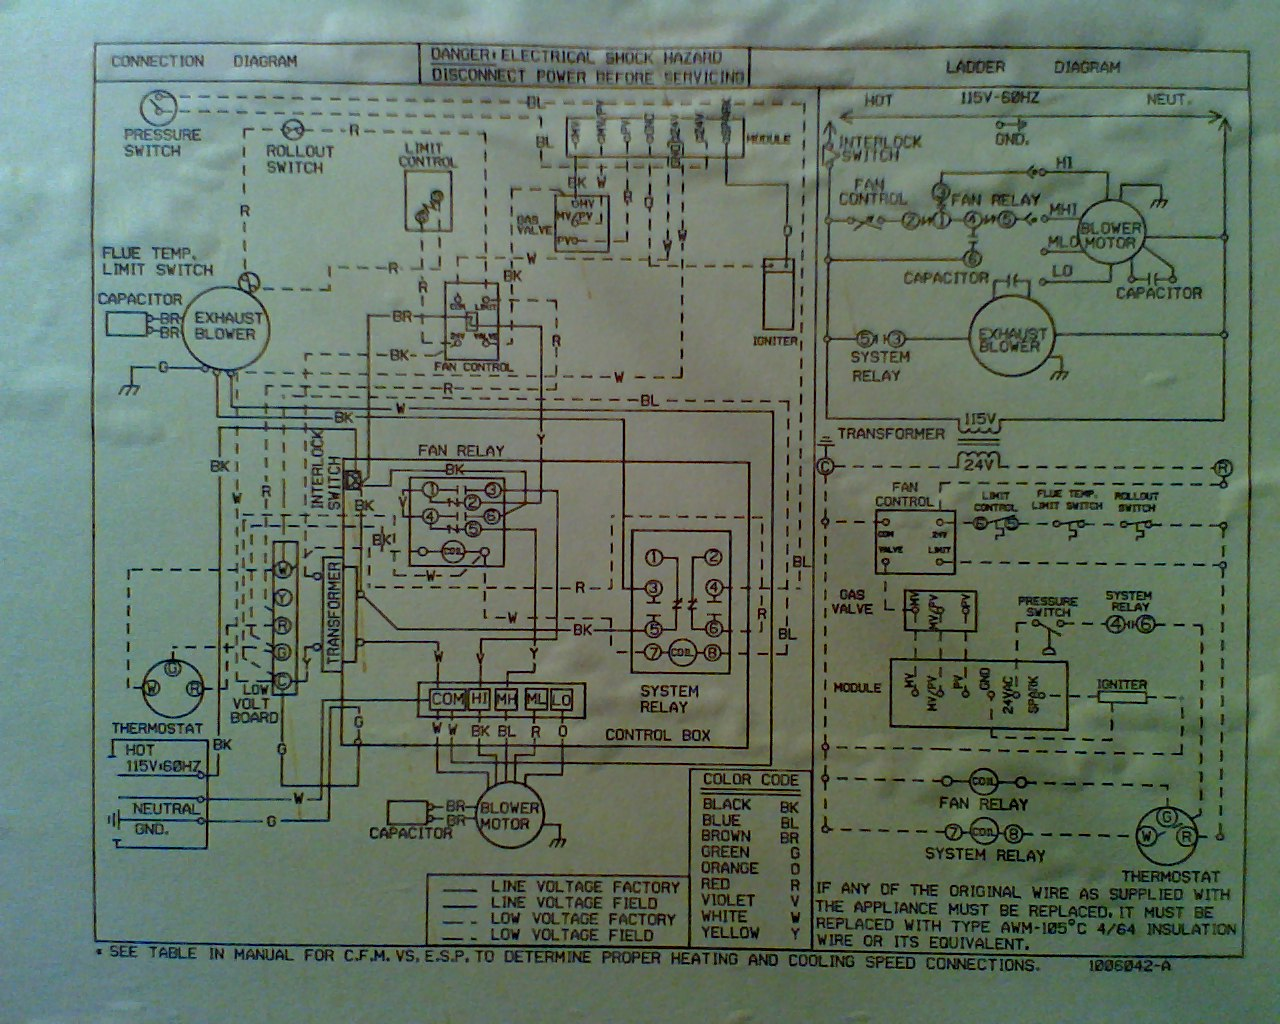 2009 11 20_231603_1120091711a air conditioner y wire grihon com ac, coolers & devices tempstar 2200 air conditioner wiring diagram at aneh.co